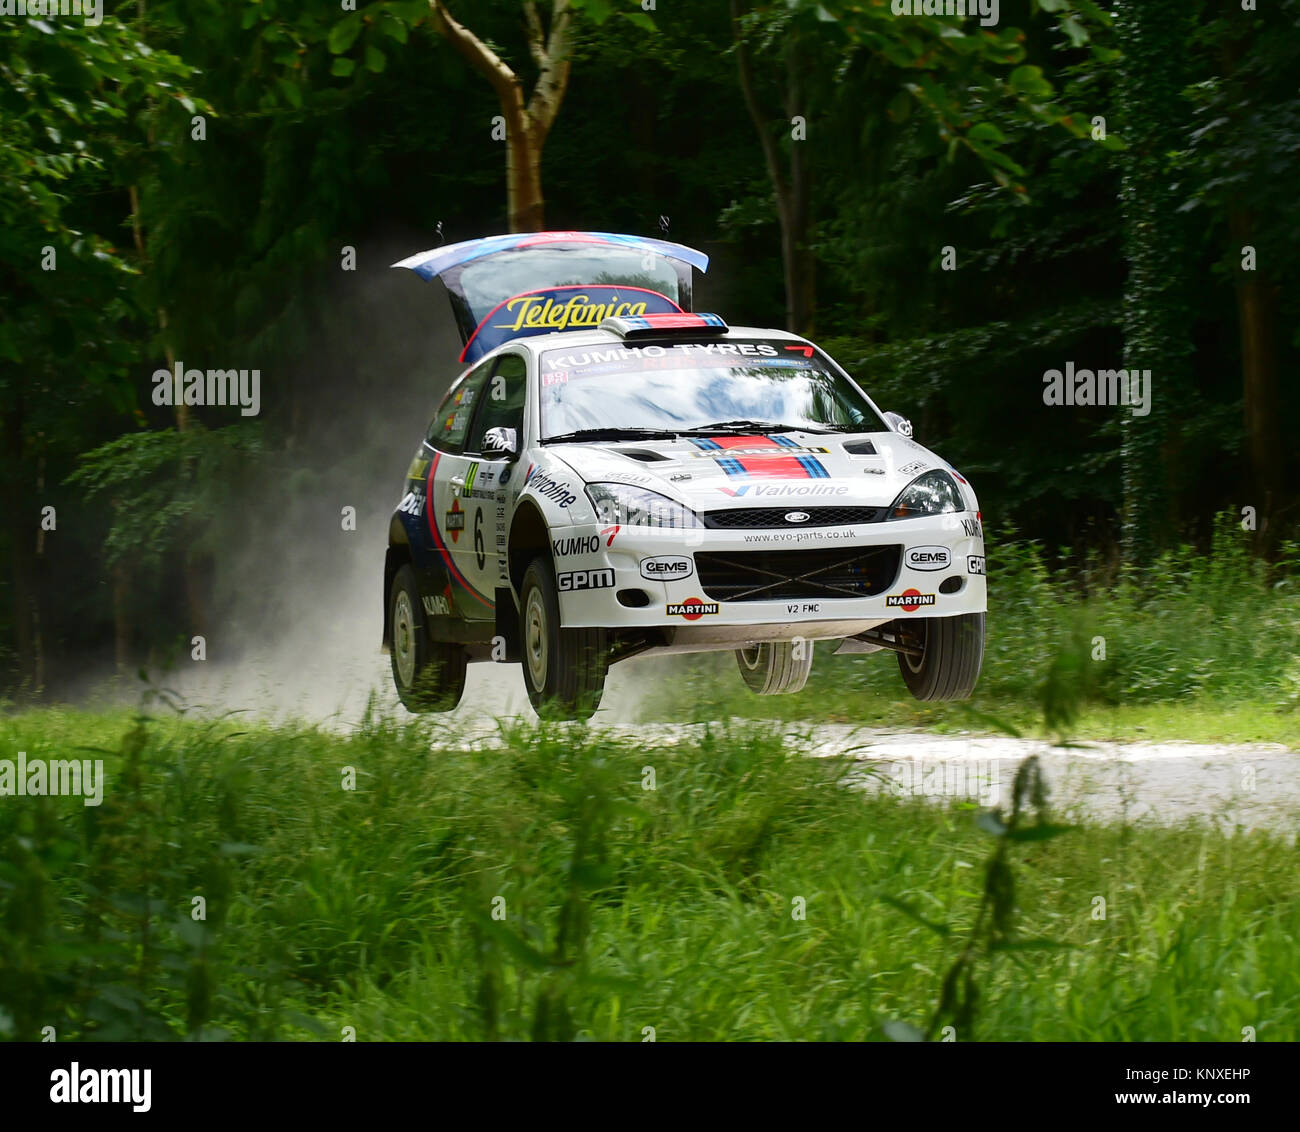 Louise Cook, Ford Fiesta R2, V 2 FMC, Forest rally stage, Goodwood FoS 2015, 2015, Classic, entertainment, fearless, - Stock Image